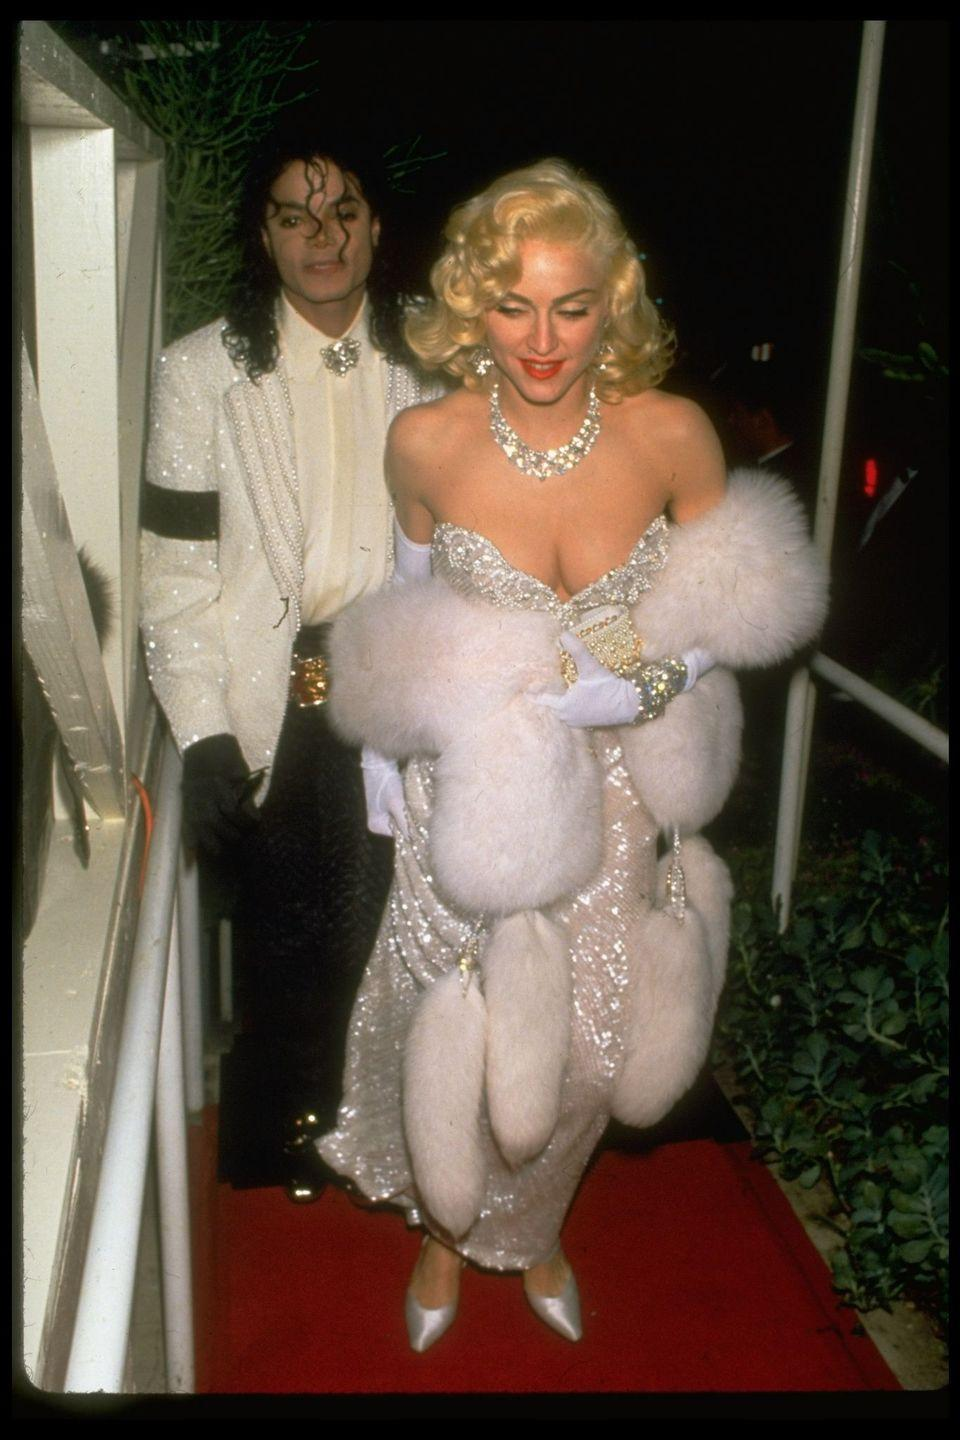 <p>Sparkling in Harry Winston jewels and a bedazzled gown, with Michael Jackson, at the 1991 Academy Awards.</p>